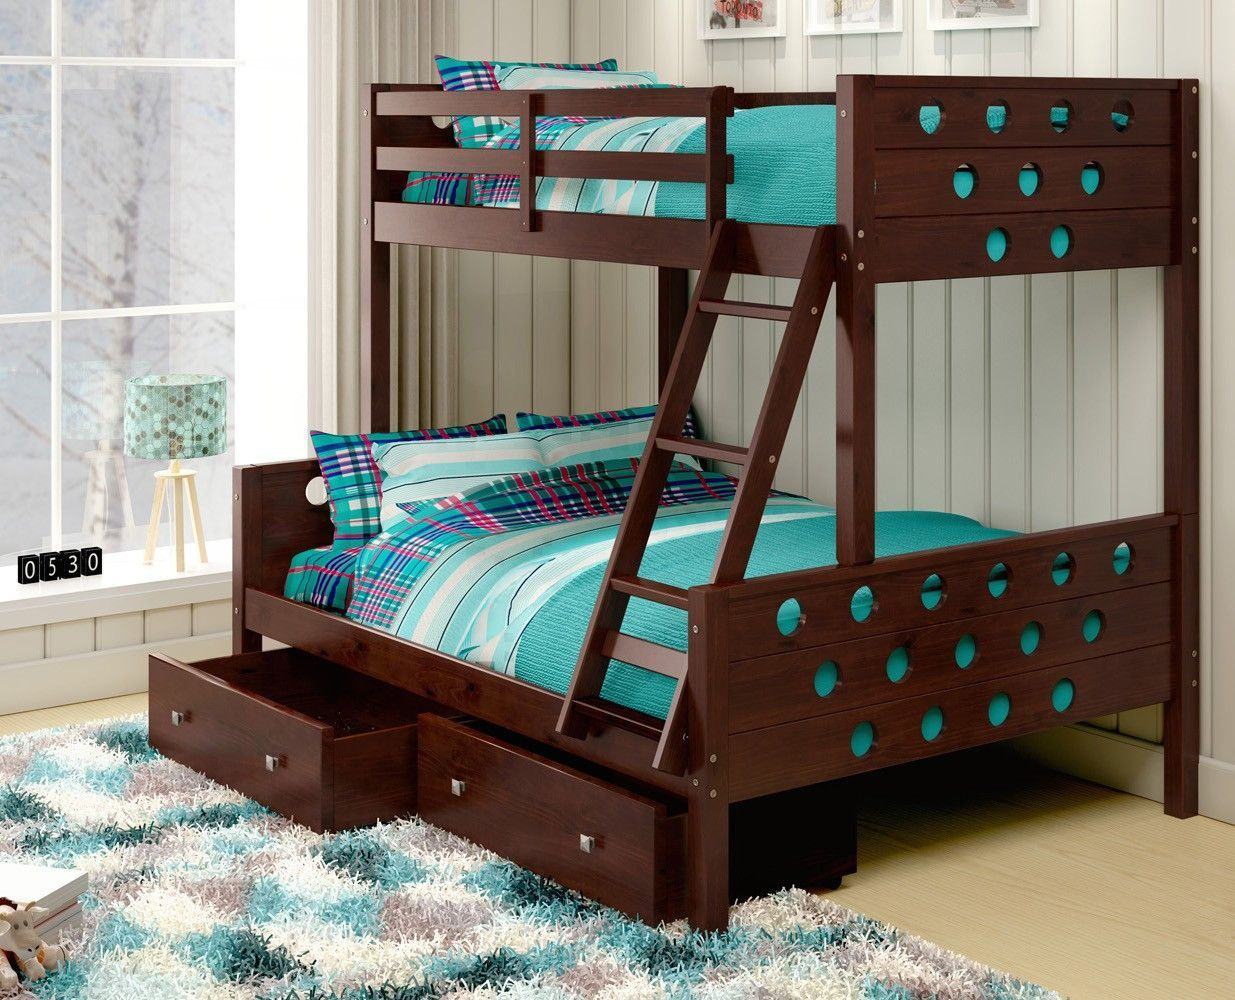 Best Kids Bunk Beds With Storage Drawers Bunk Beds With 400 x 300